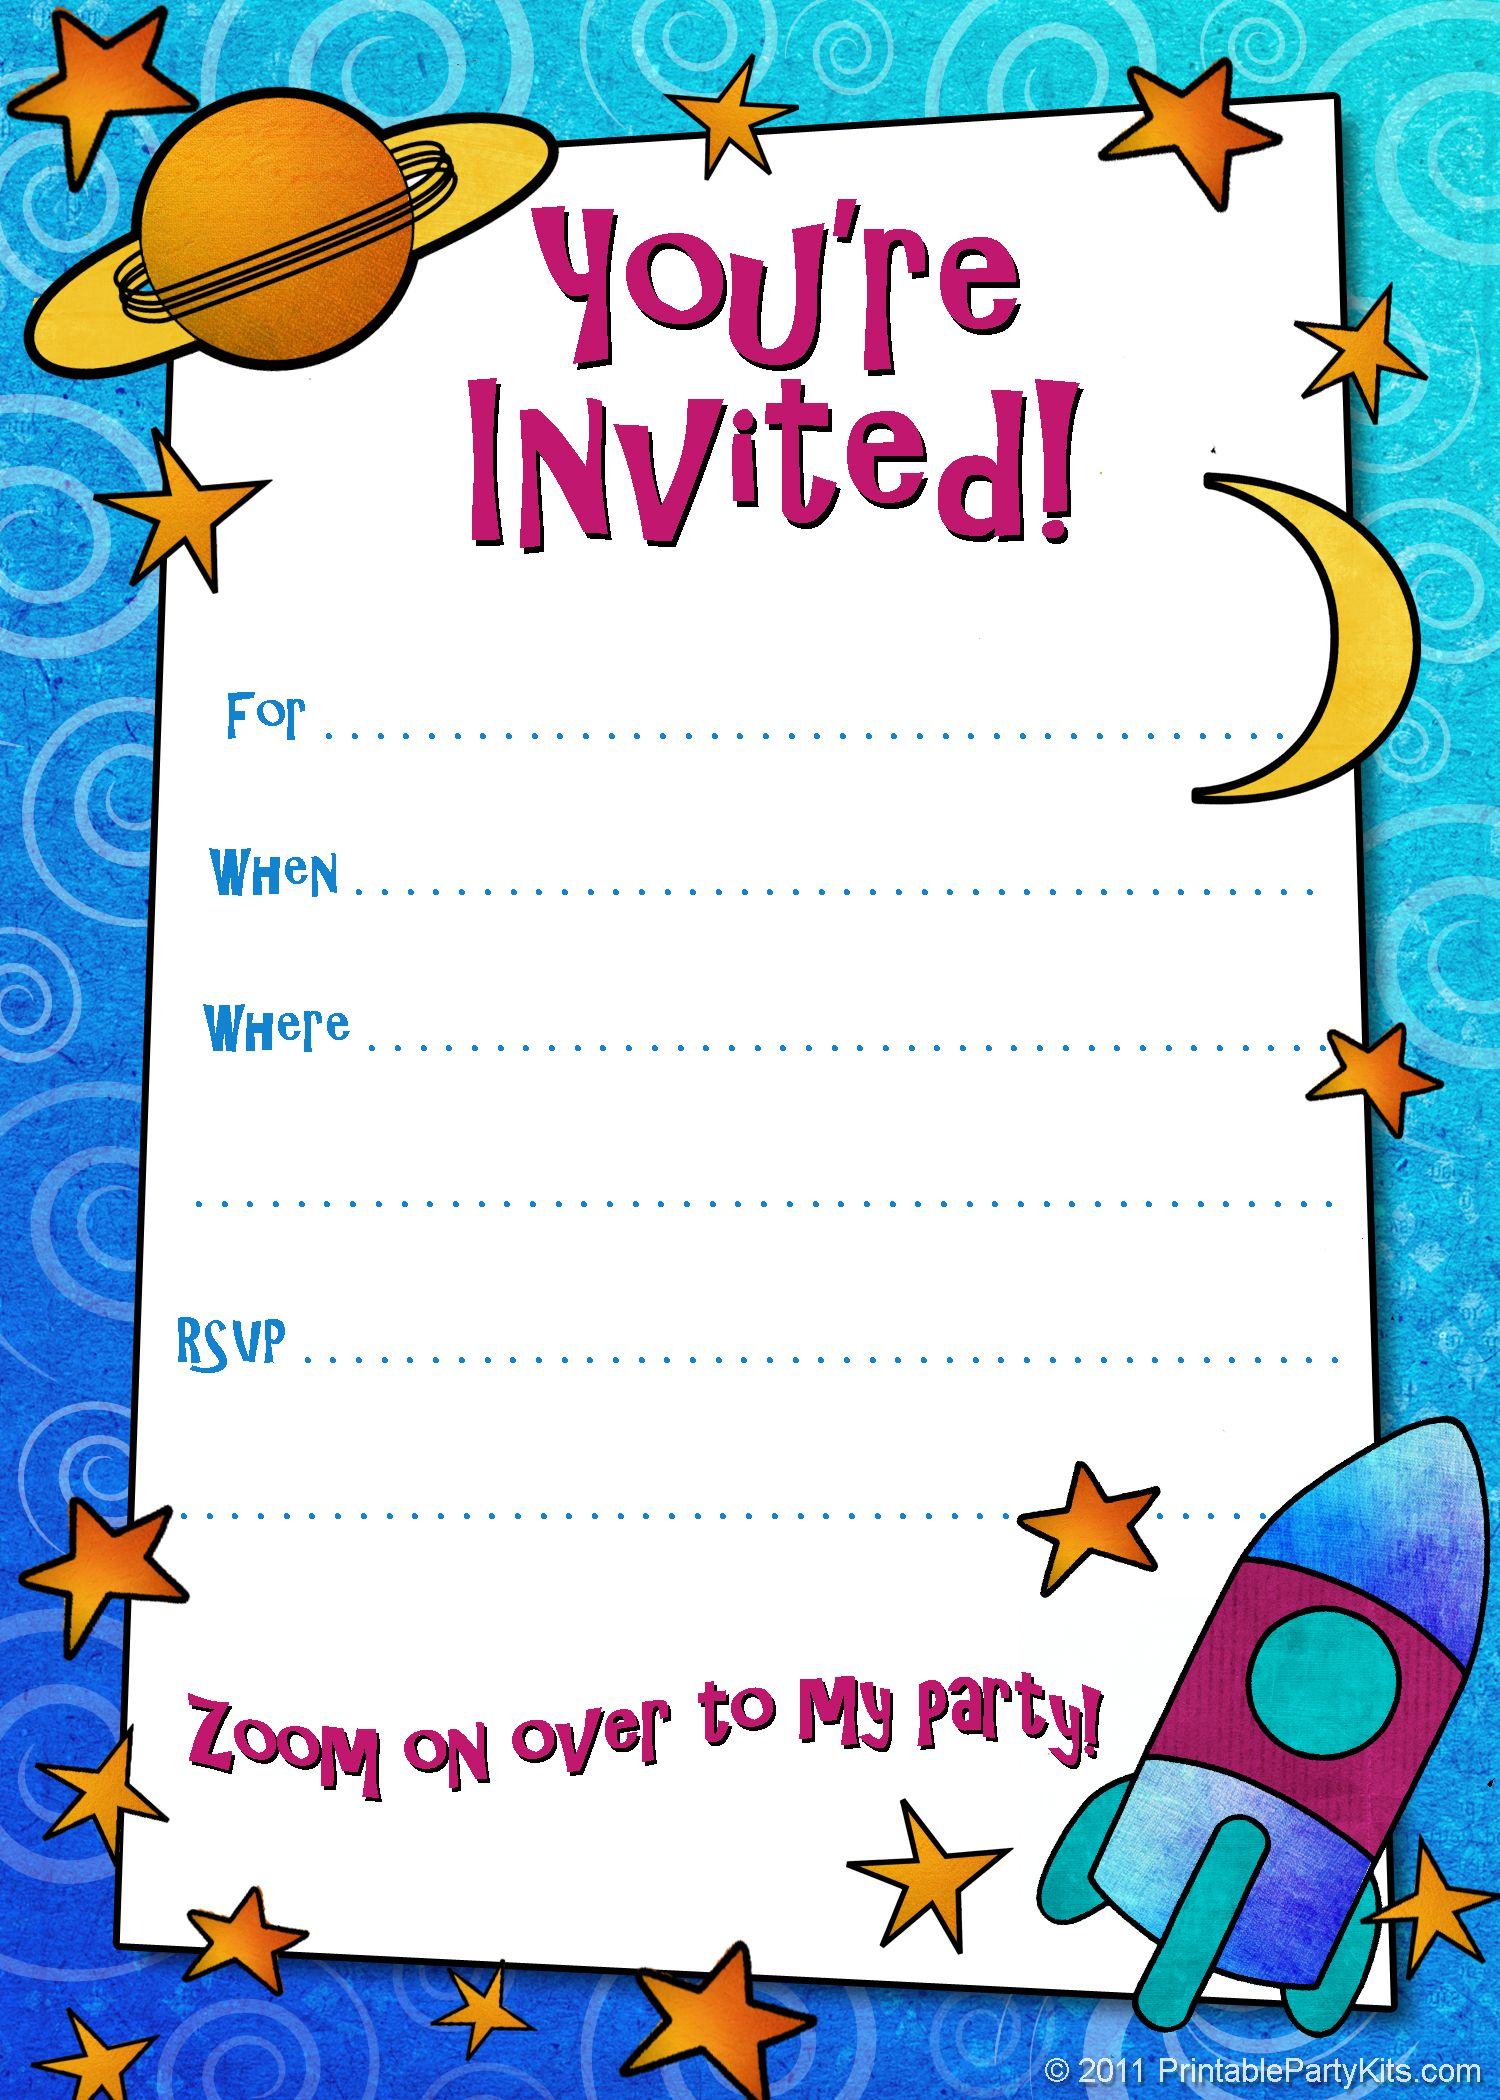 Free Printable Boys Birthday Party Invitations | Pinterest | Boy ...